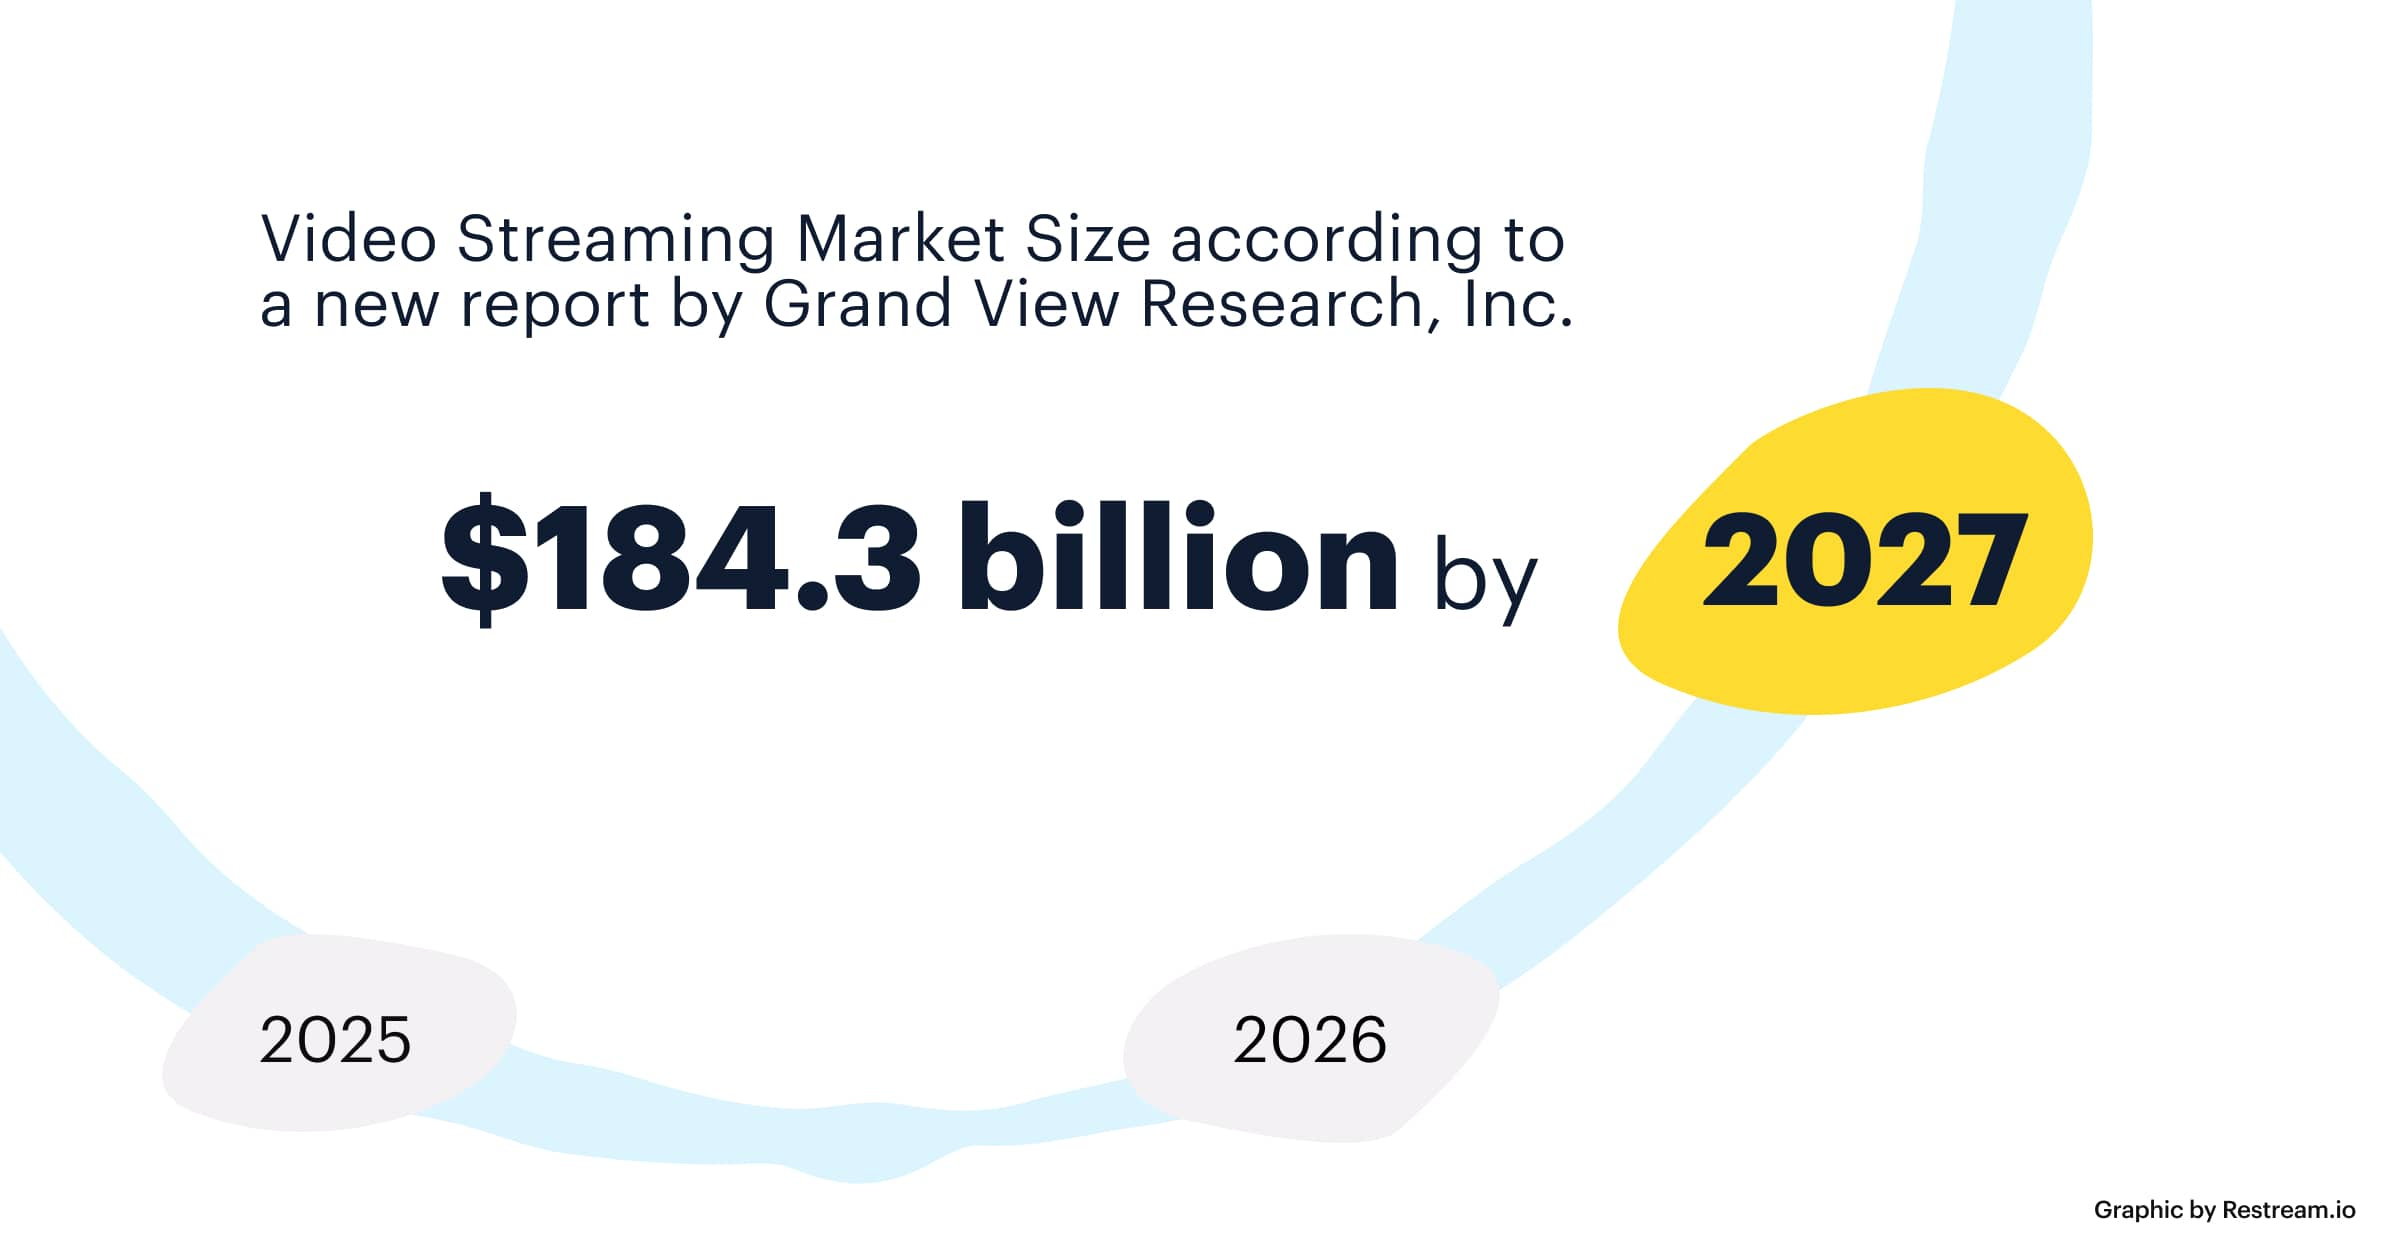 Video streaming market size by 2027